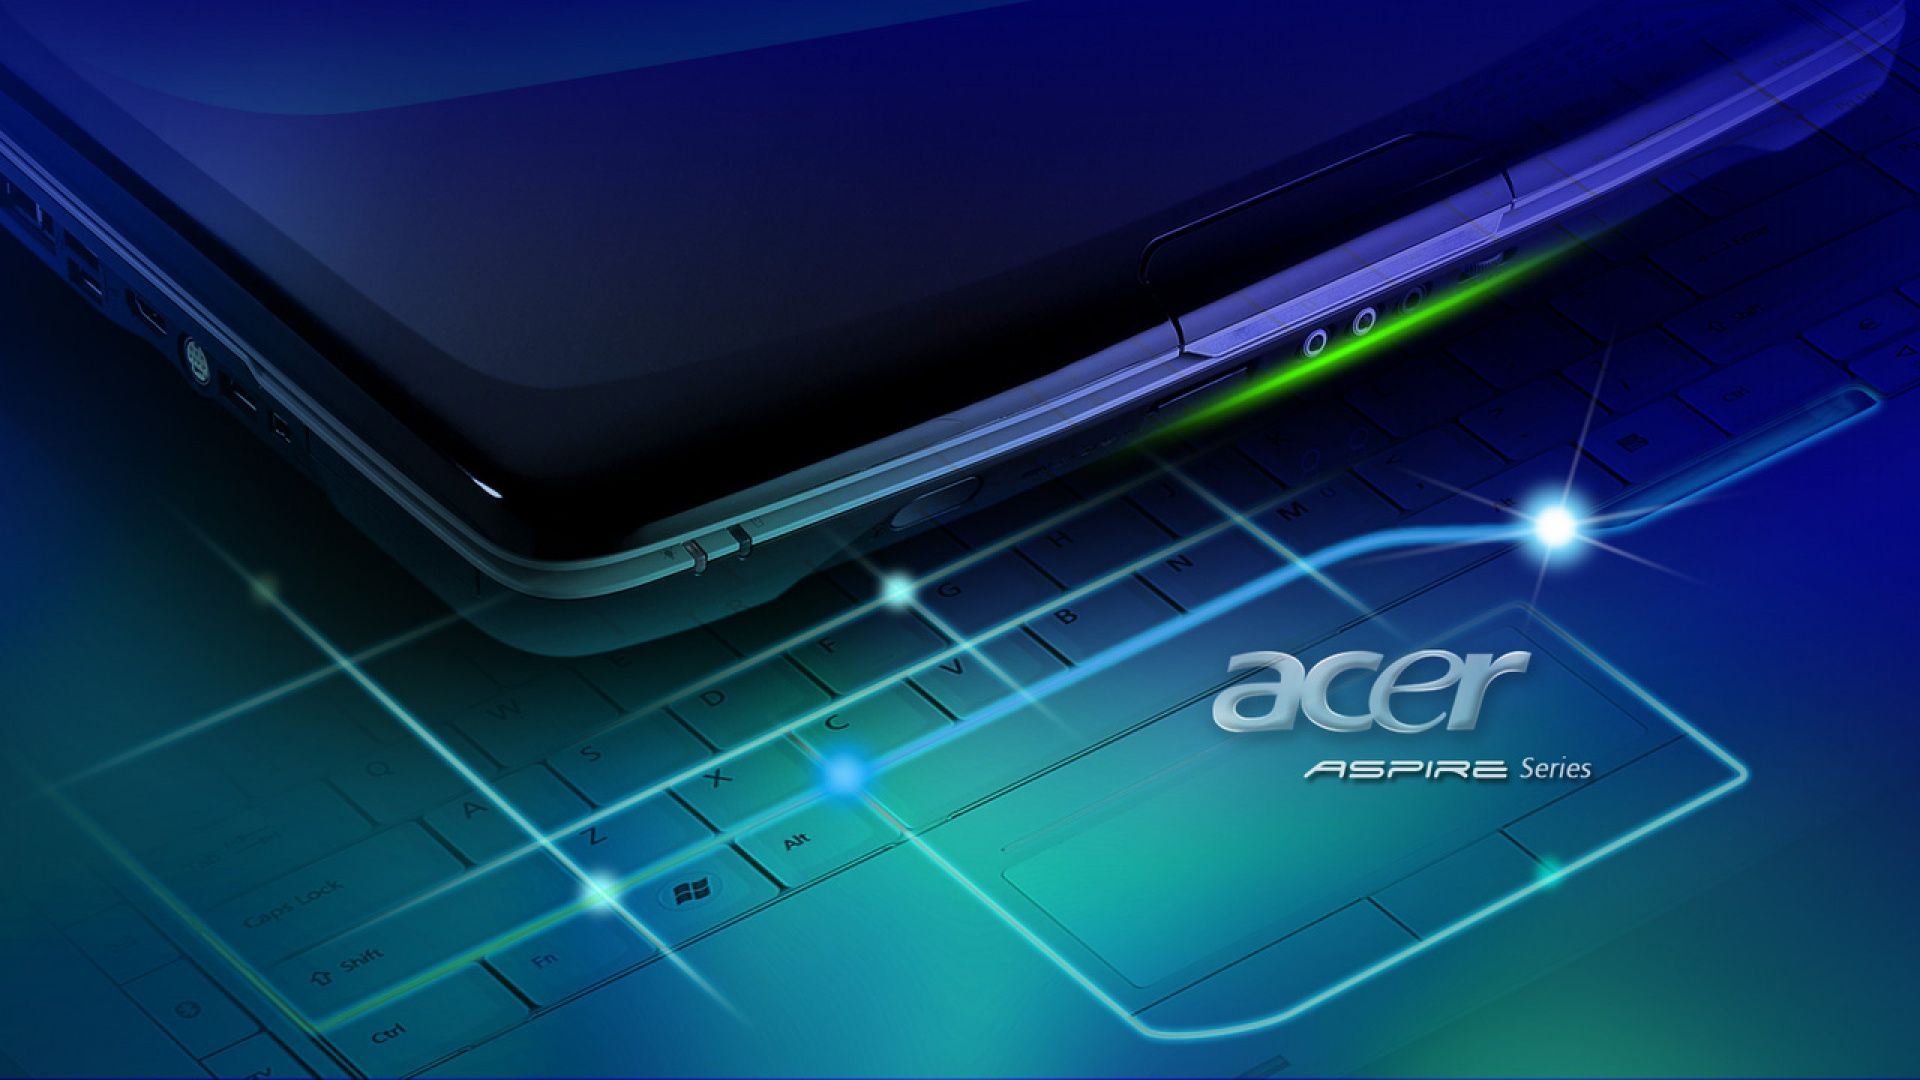 Acer 1080p